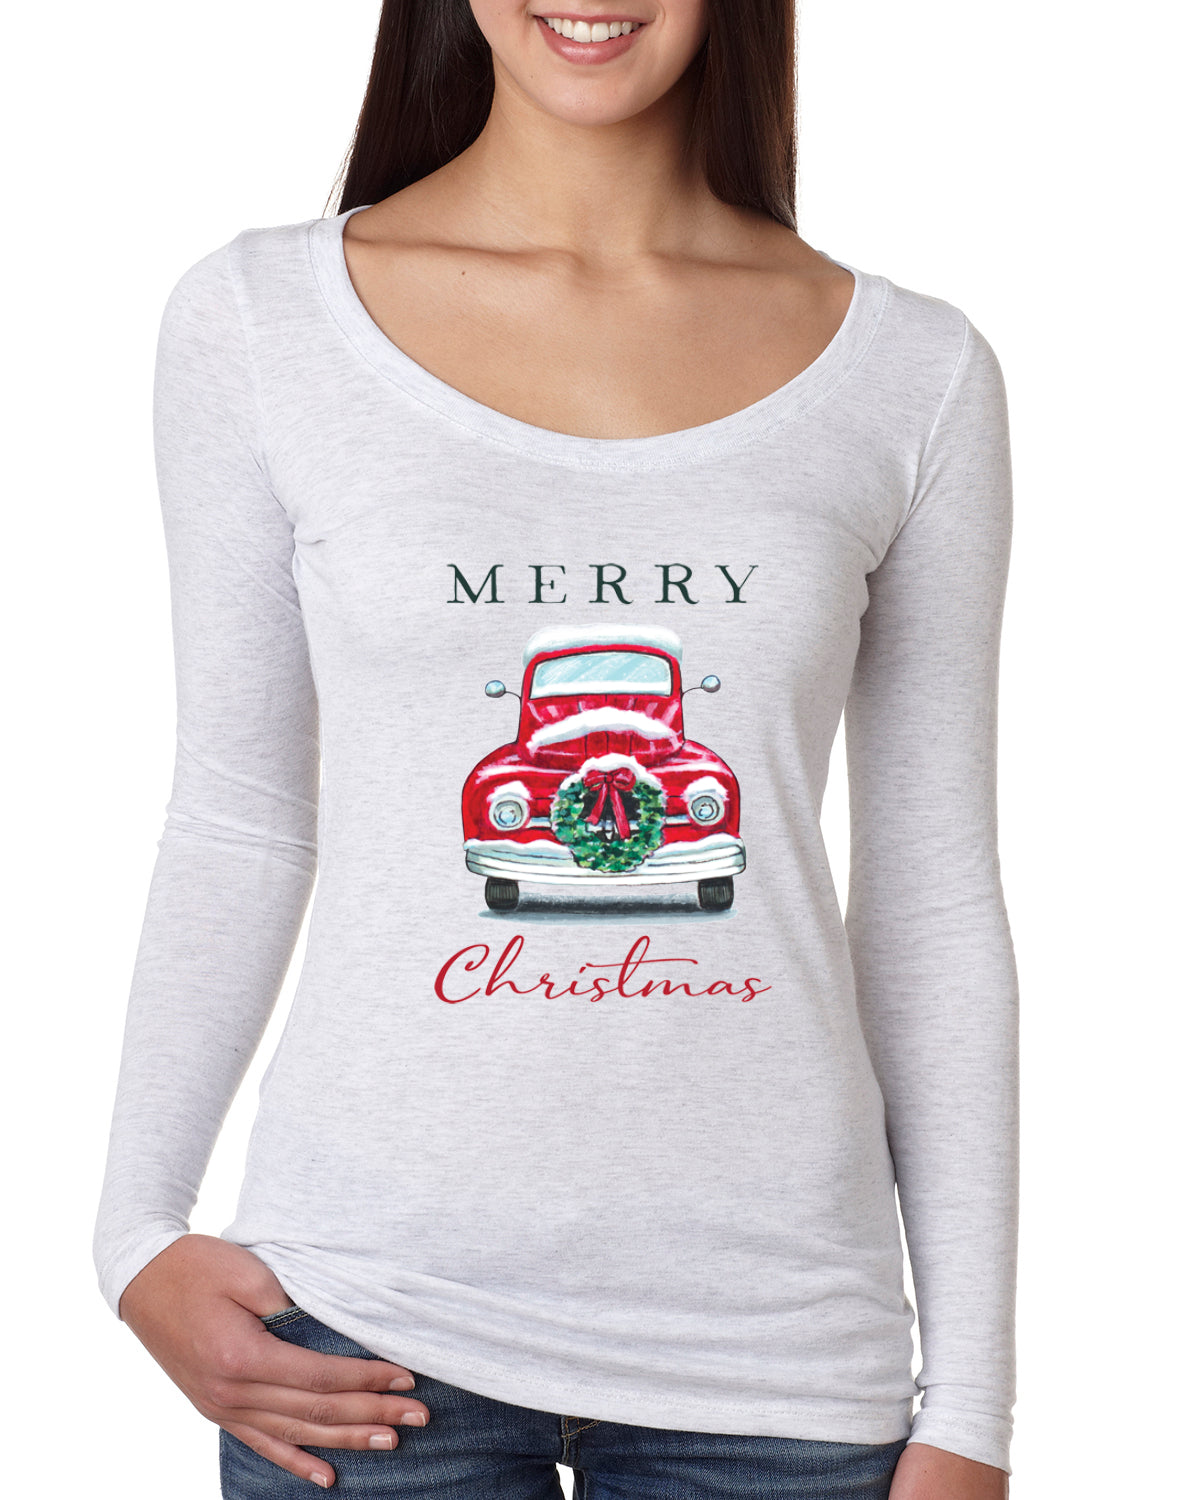 Merry Christmas Red Car with Xmas Garland Christmas Womens Scoop Long Sleeve Top